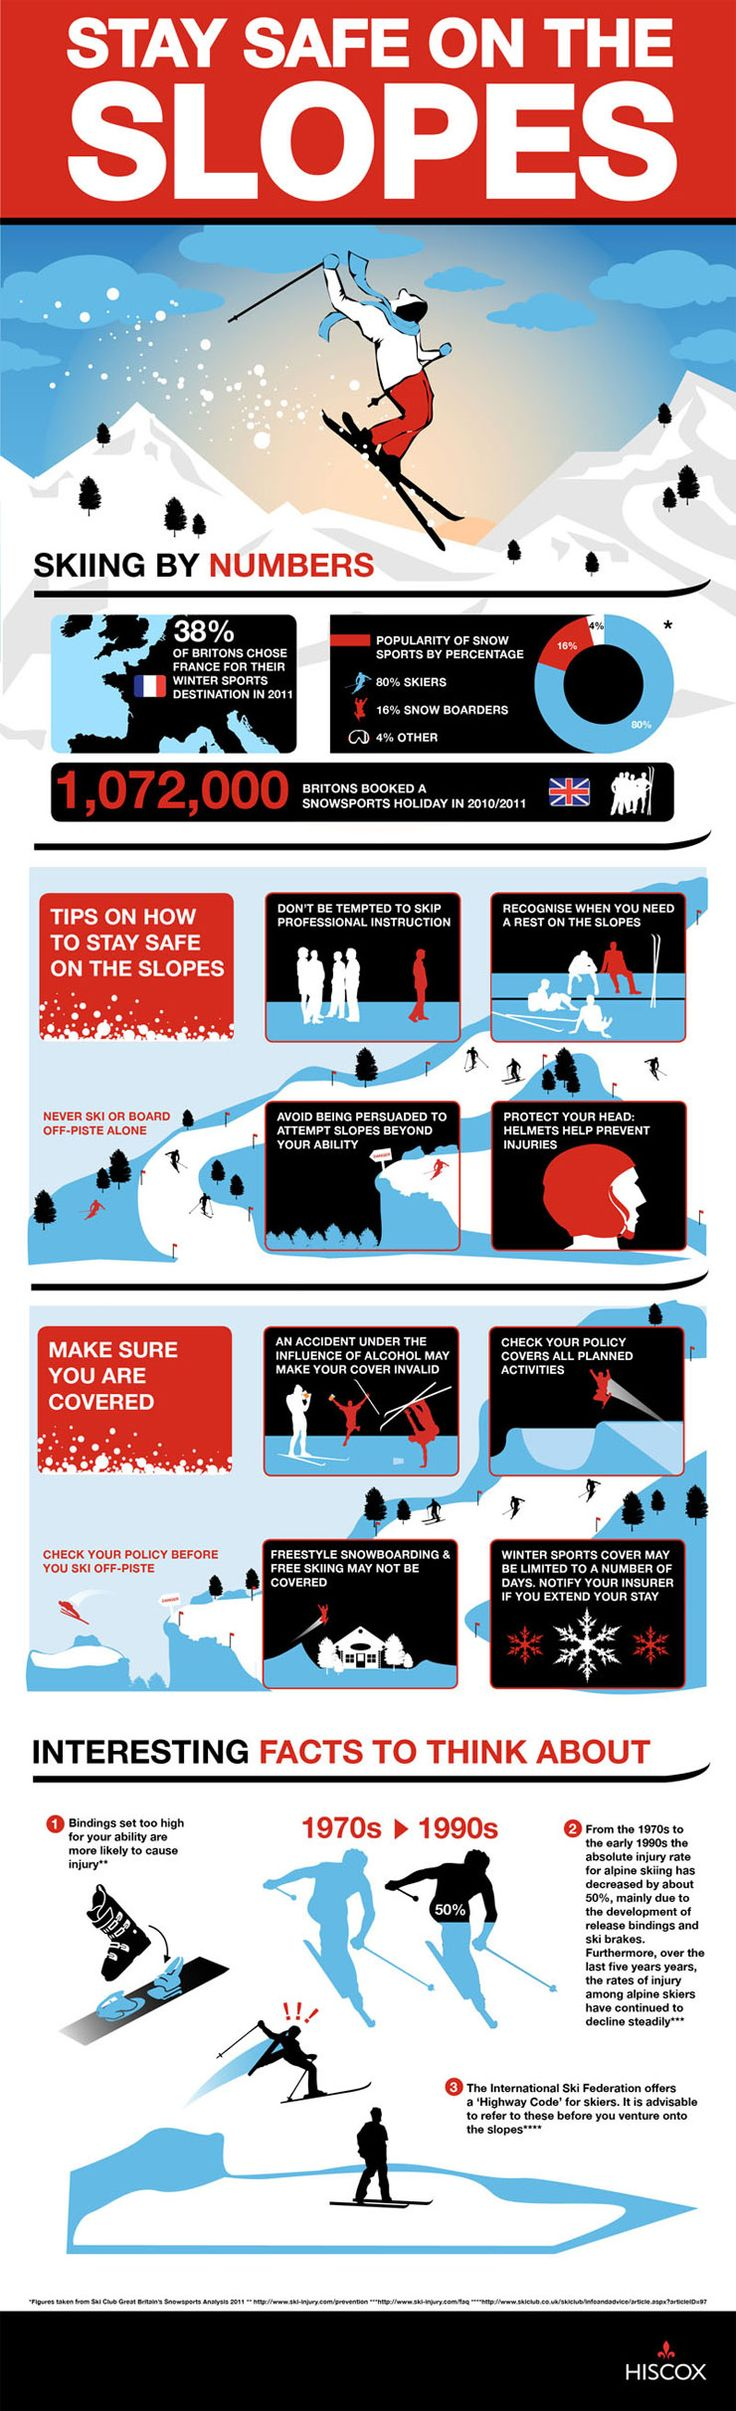 Stay Safe On The Slopes. A few good tips for those planning on a skiing holiday. @Whitney Martens